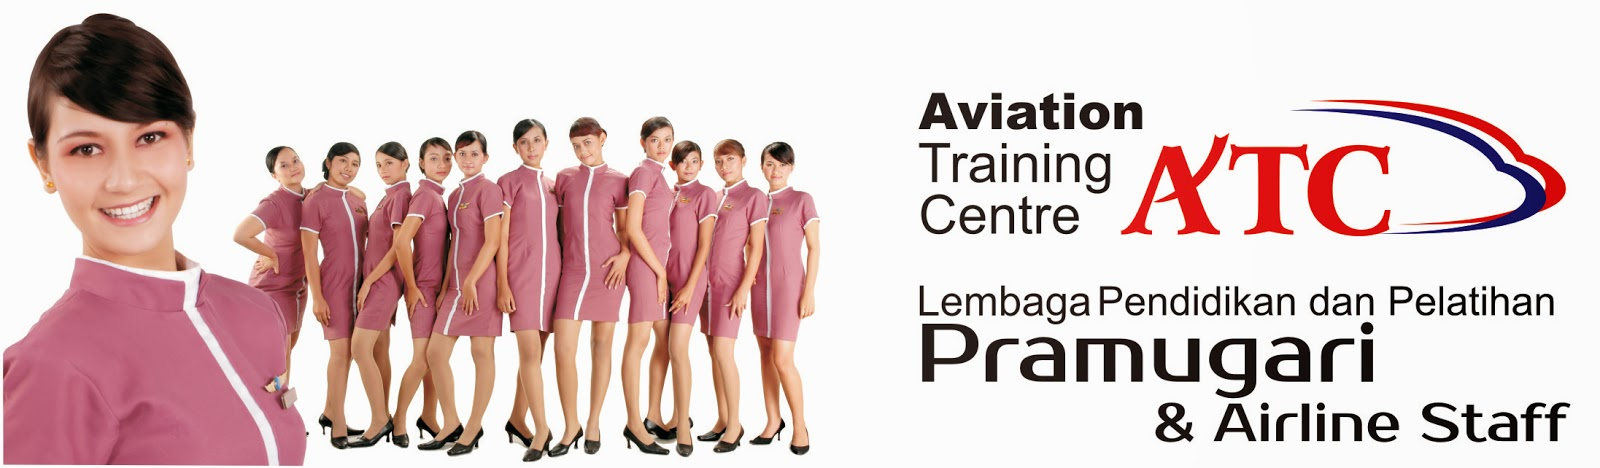 Lowongan Kerja di Aviation Training Centre – ATC Yogyakarta (Supervisor Marketing & Marketing)